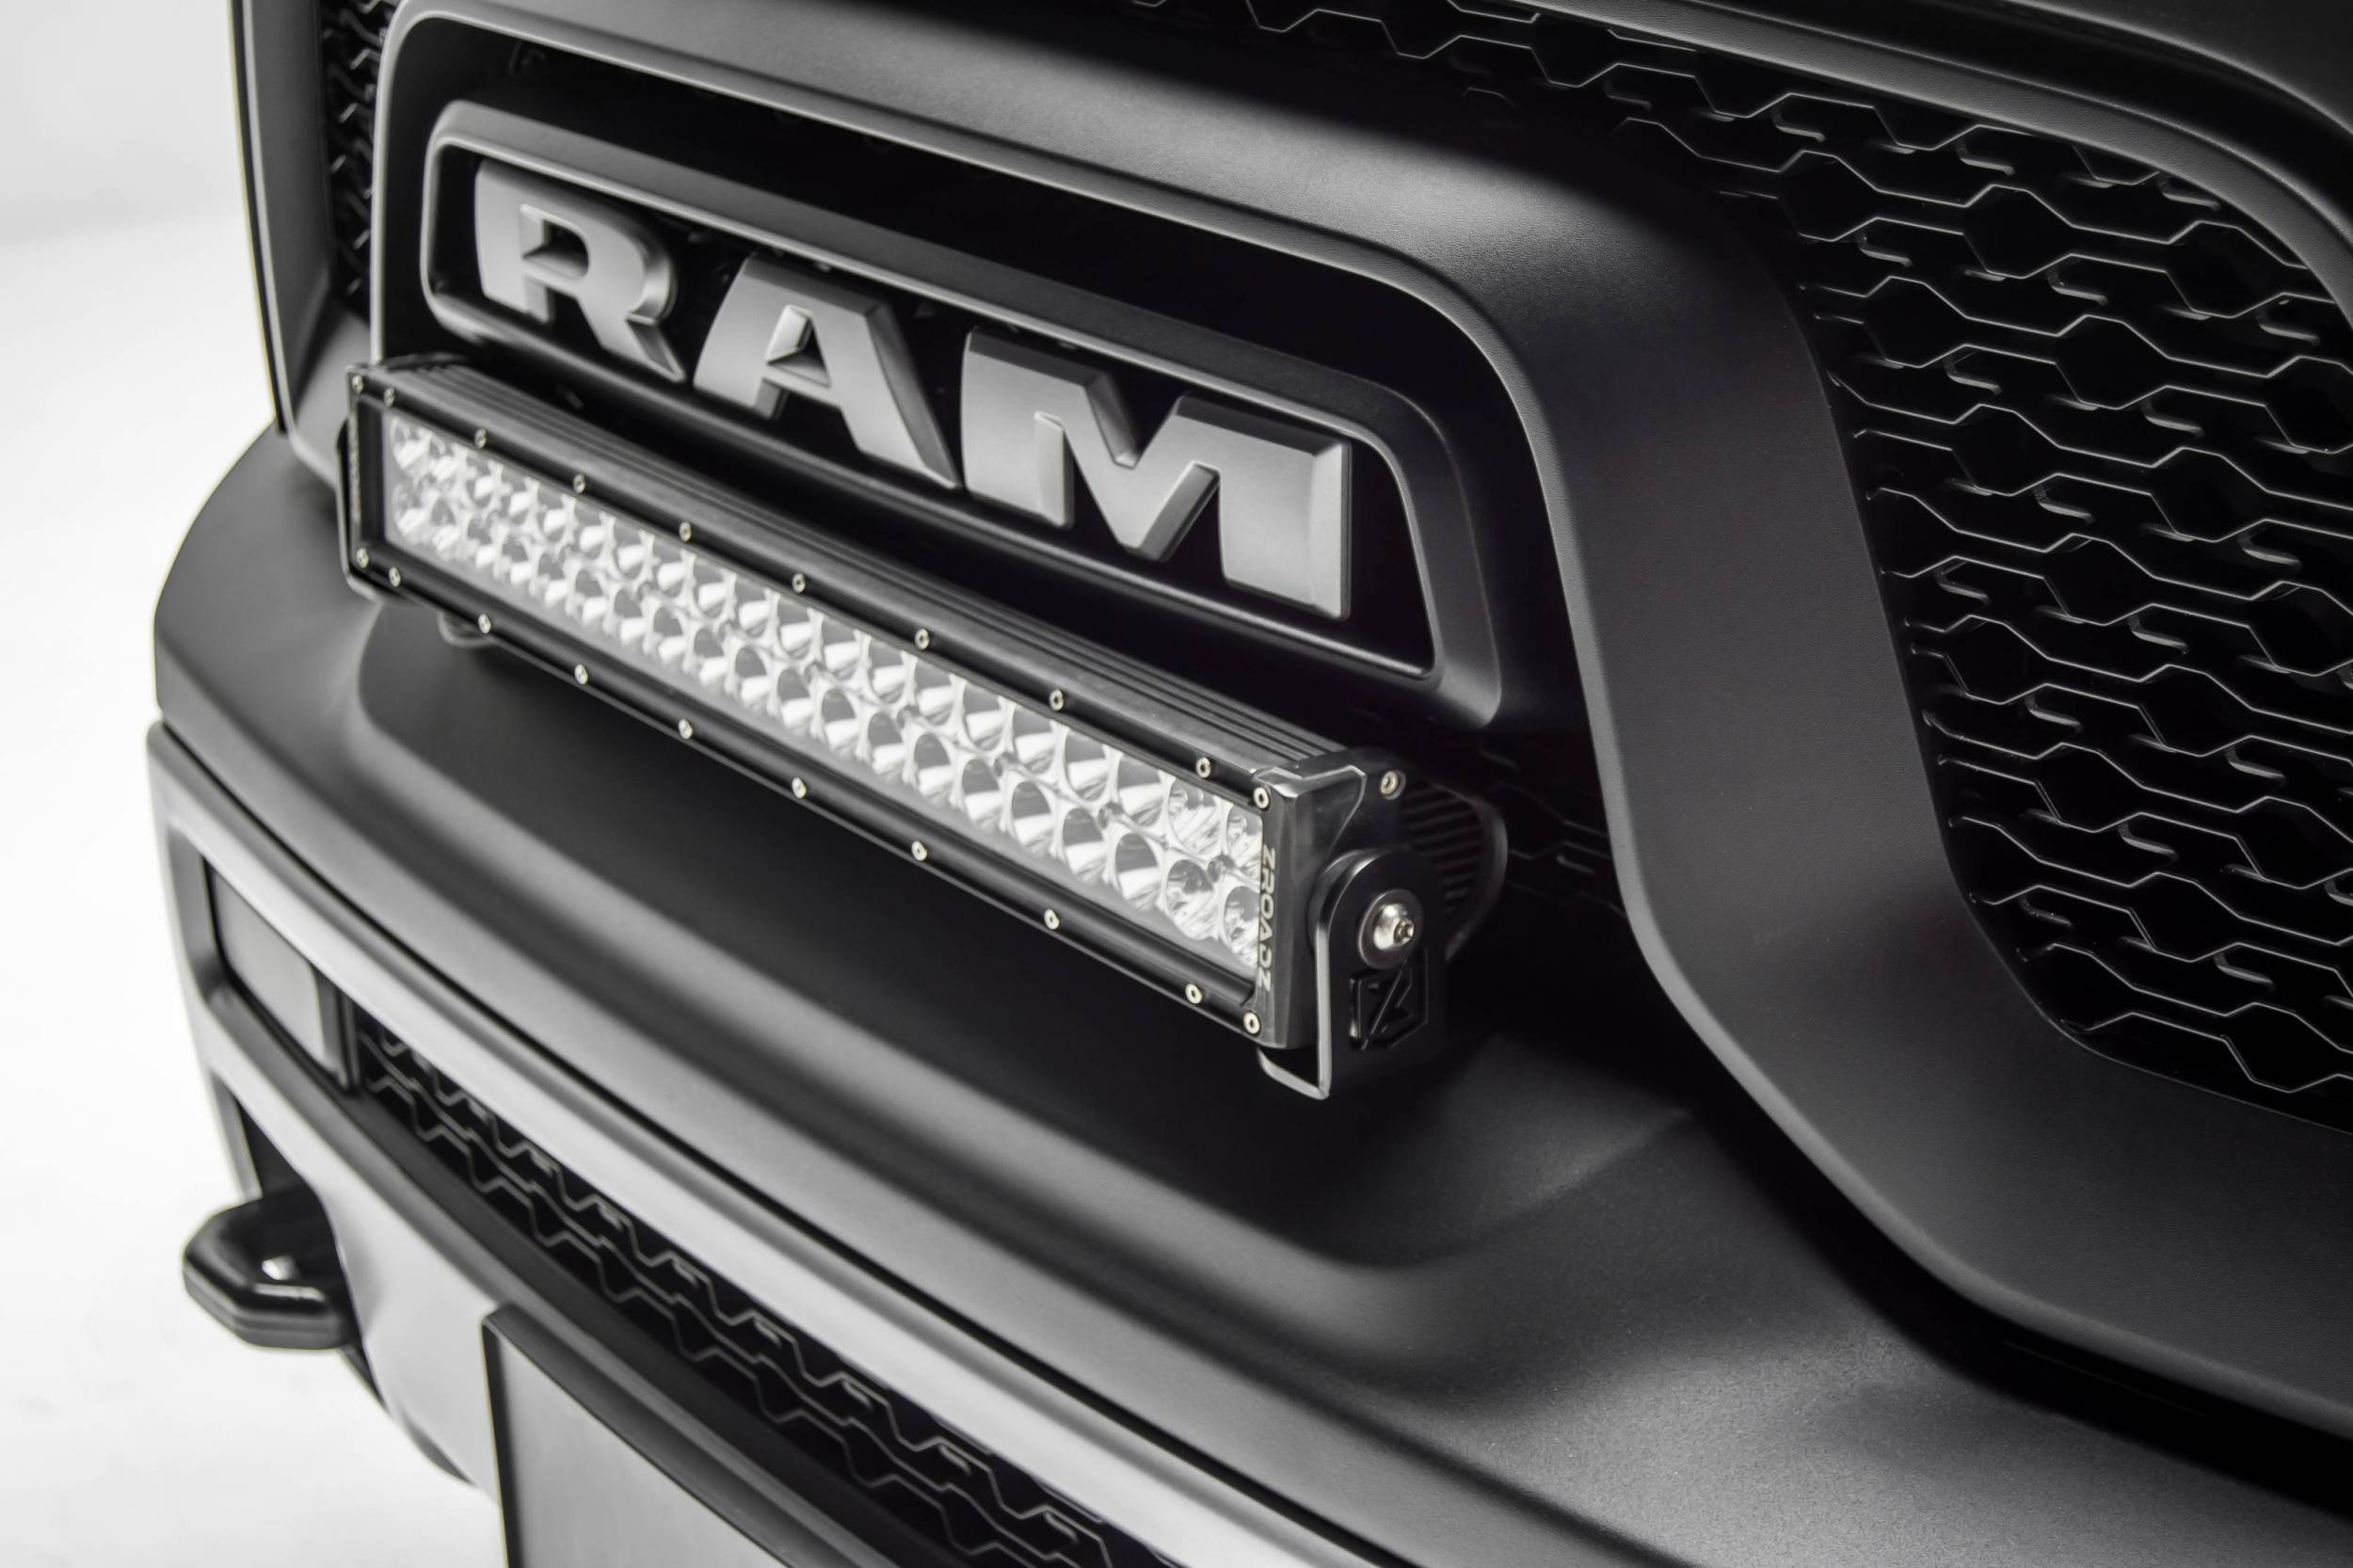 2015-2018 Ram Rebel Front Bumper Top LED Kit, Incl. (1) 20 Inch LED Straight Double Row Light Bar - PN #Z324552-KIT